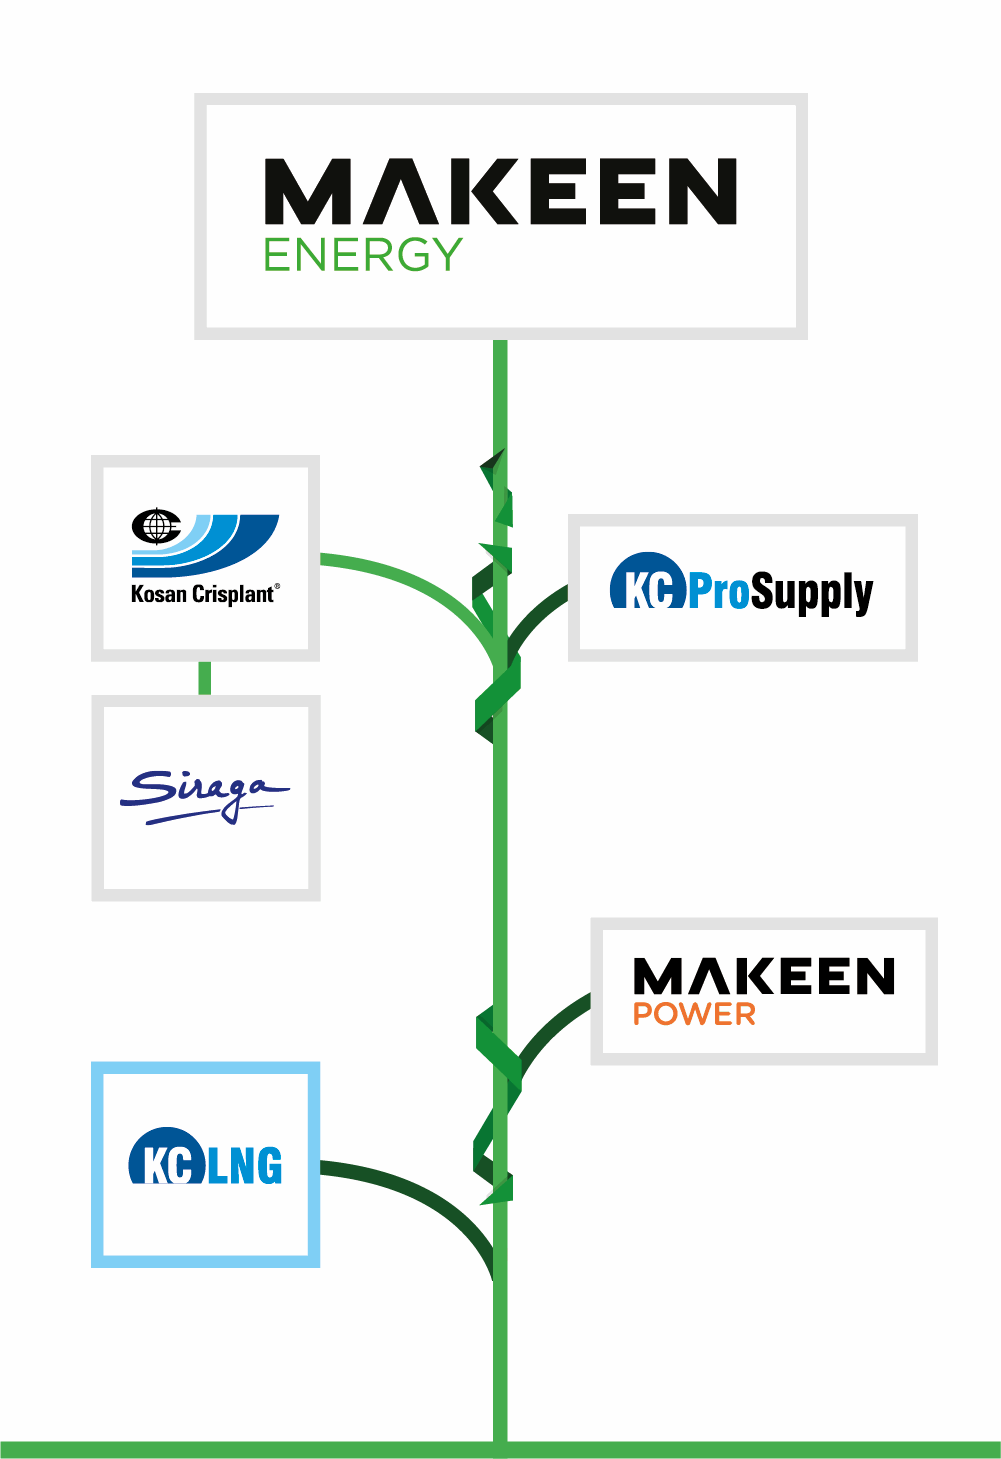 MAKEEN Energy tree with all of the company's brands